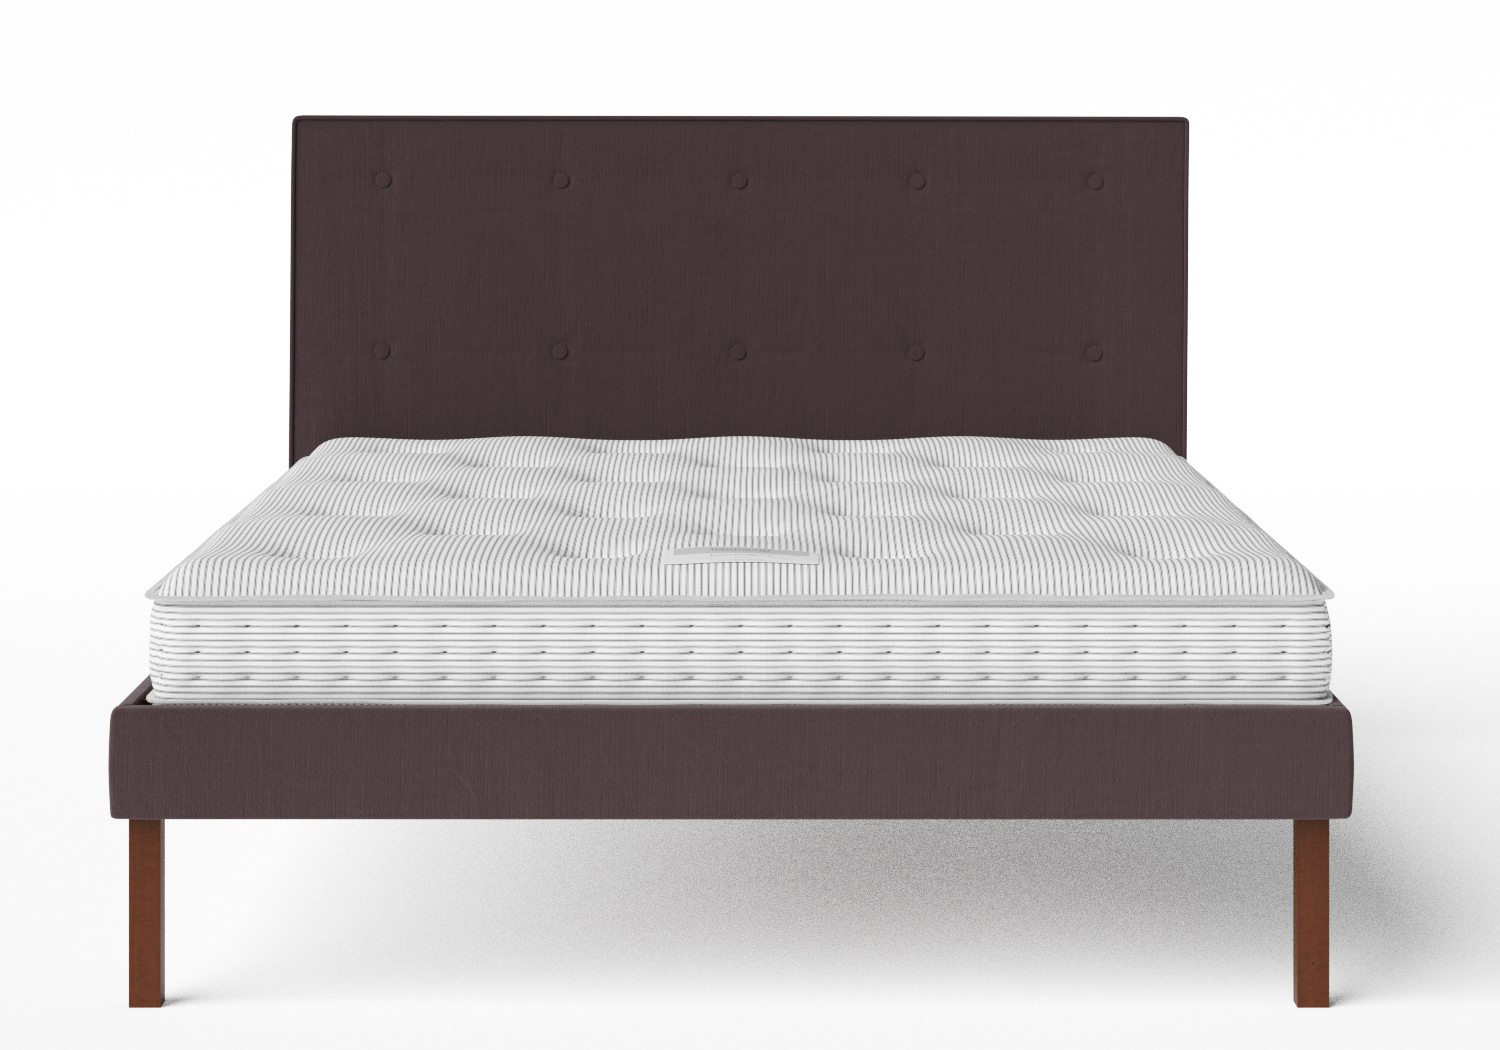 Misaki Upholstered Bed in Aubergine fabric with buttoning shown with Juno 1 mattress